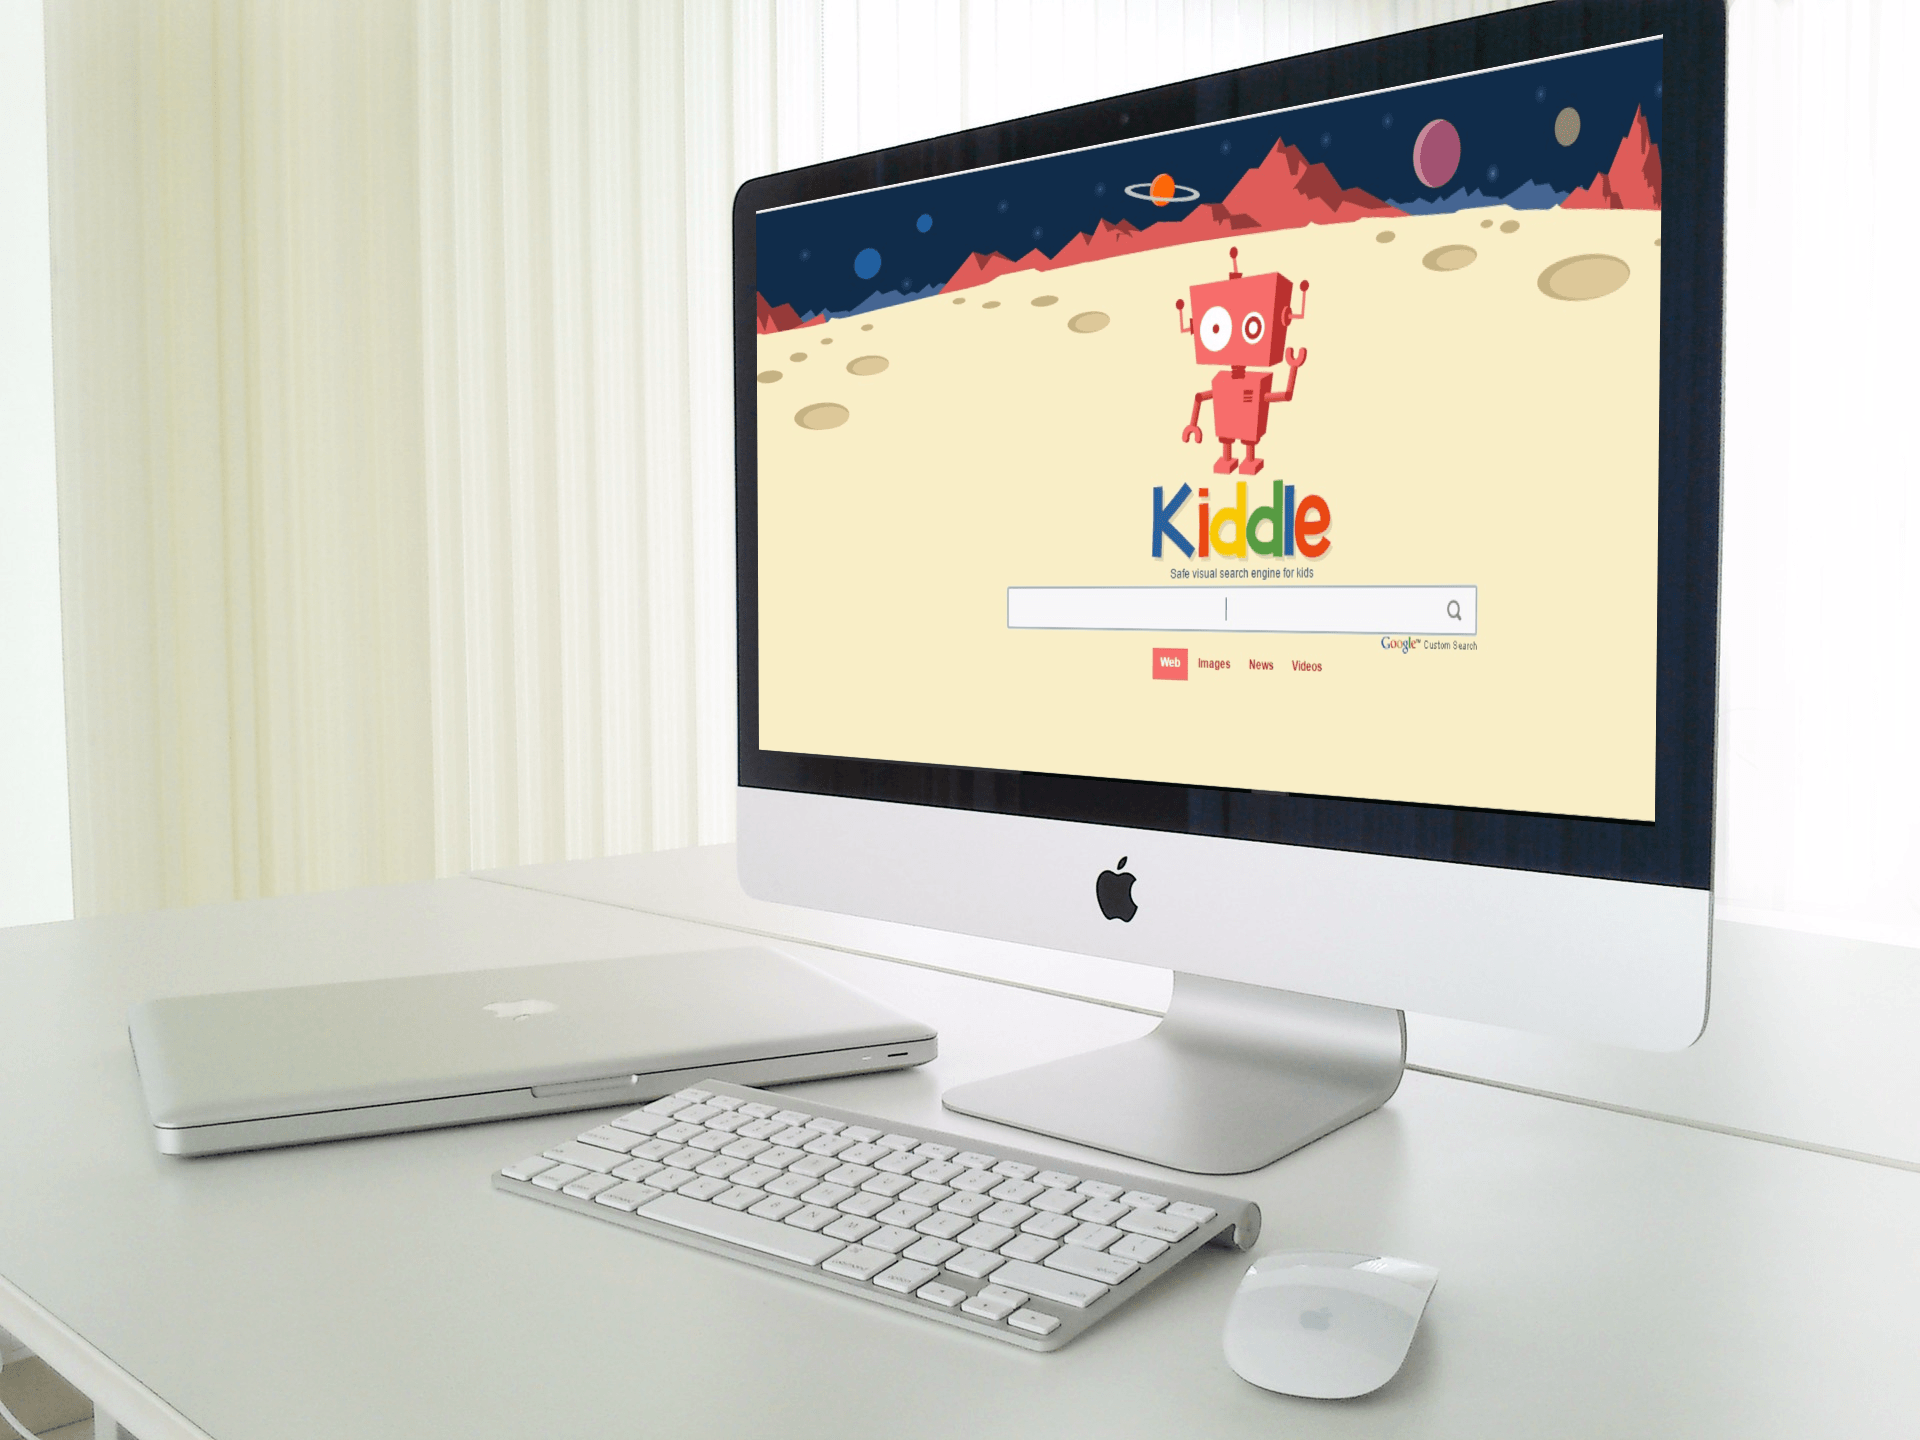 As parents, we try to keep our children as safe on the internet as possible. Internet safety is key to promoting safety in the home and help guard our children against unwanted interactions. A new kid friendly search engine called Kiddle is now here. Is Kiddle the answer parents have been searching for? Click to read and find out more.